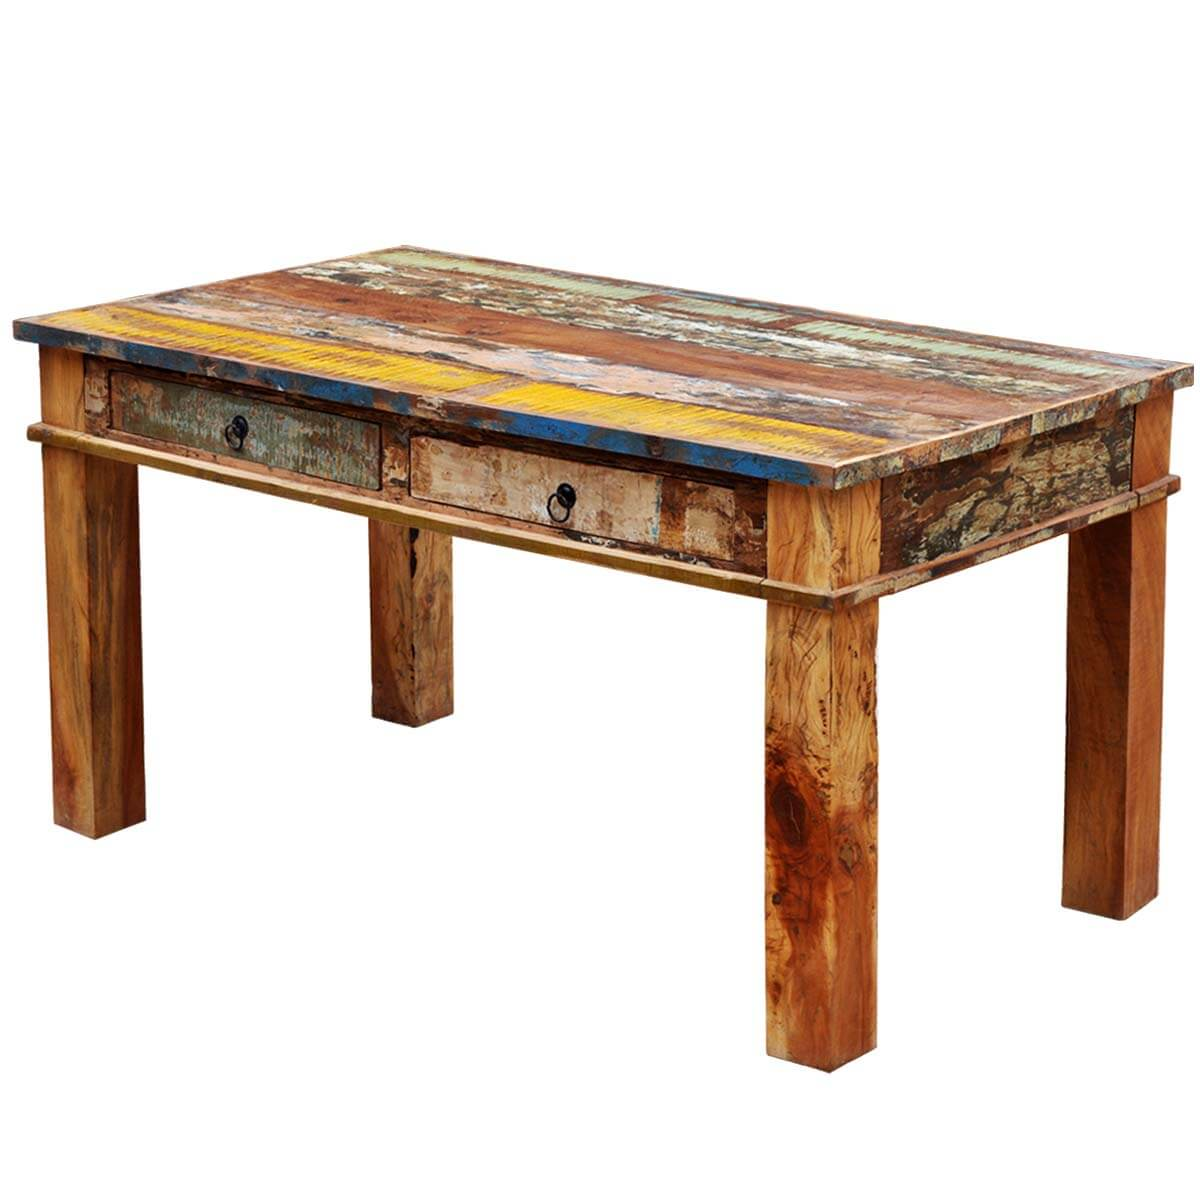 Unique Small Kitchen Tables: Unique Reclaimed Wood Rustic Dining Room Table Furniture